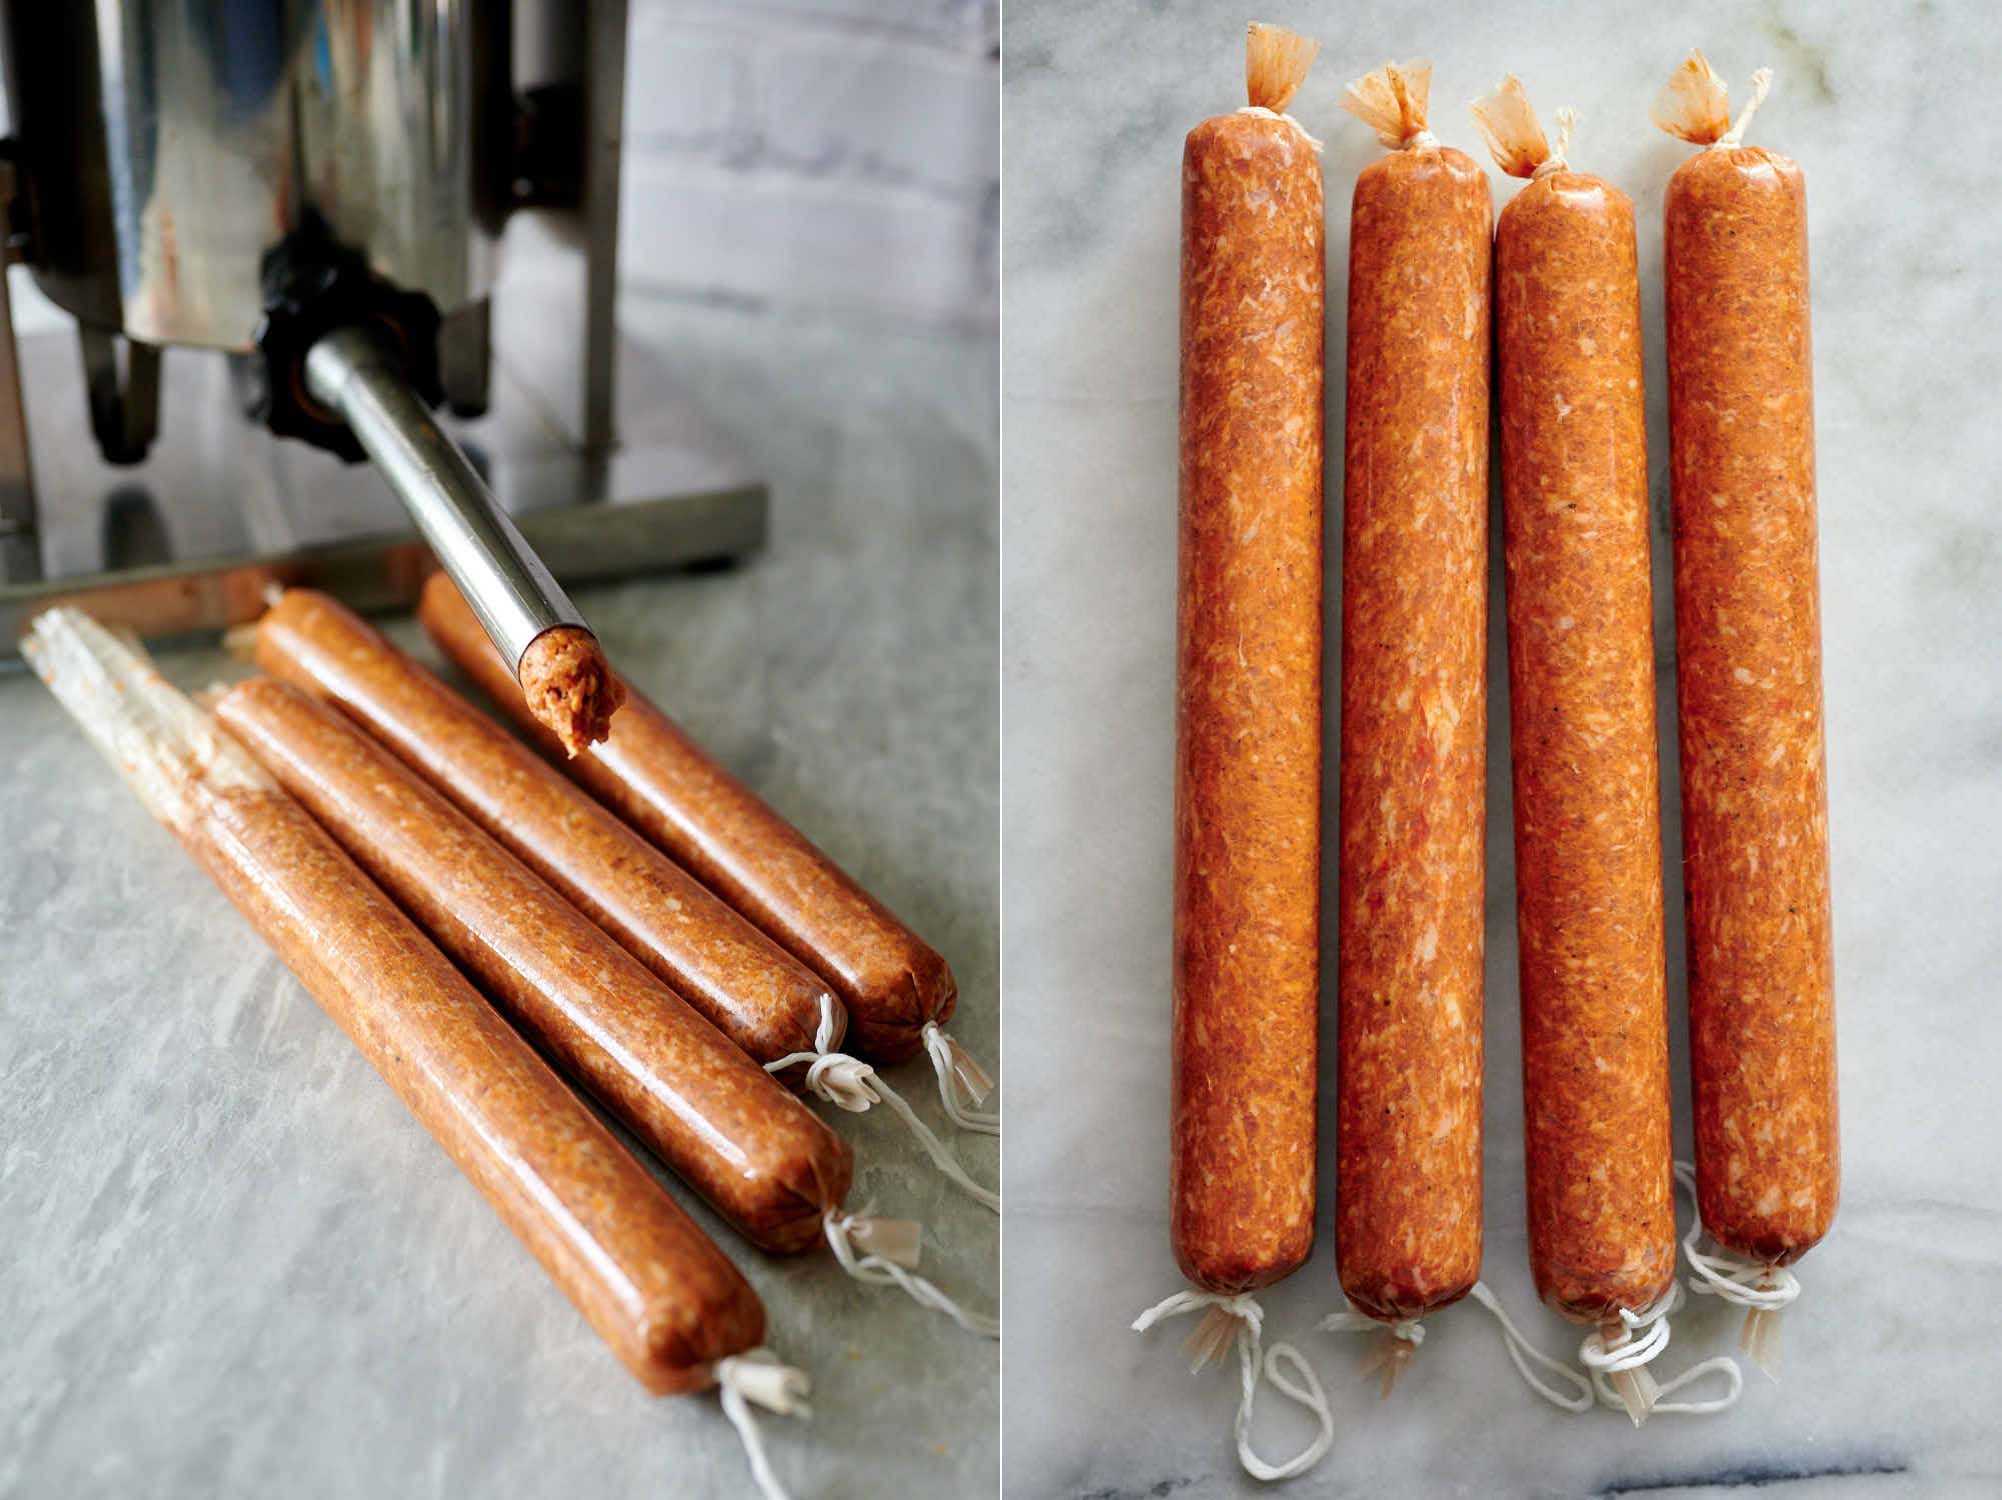 Stuffing pepperoni into casings